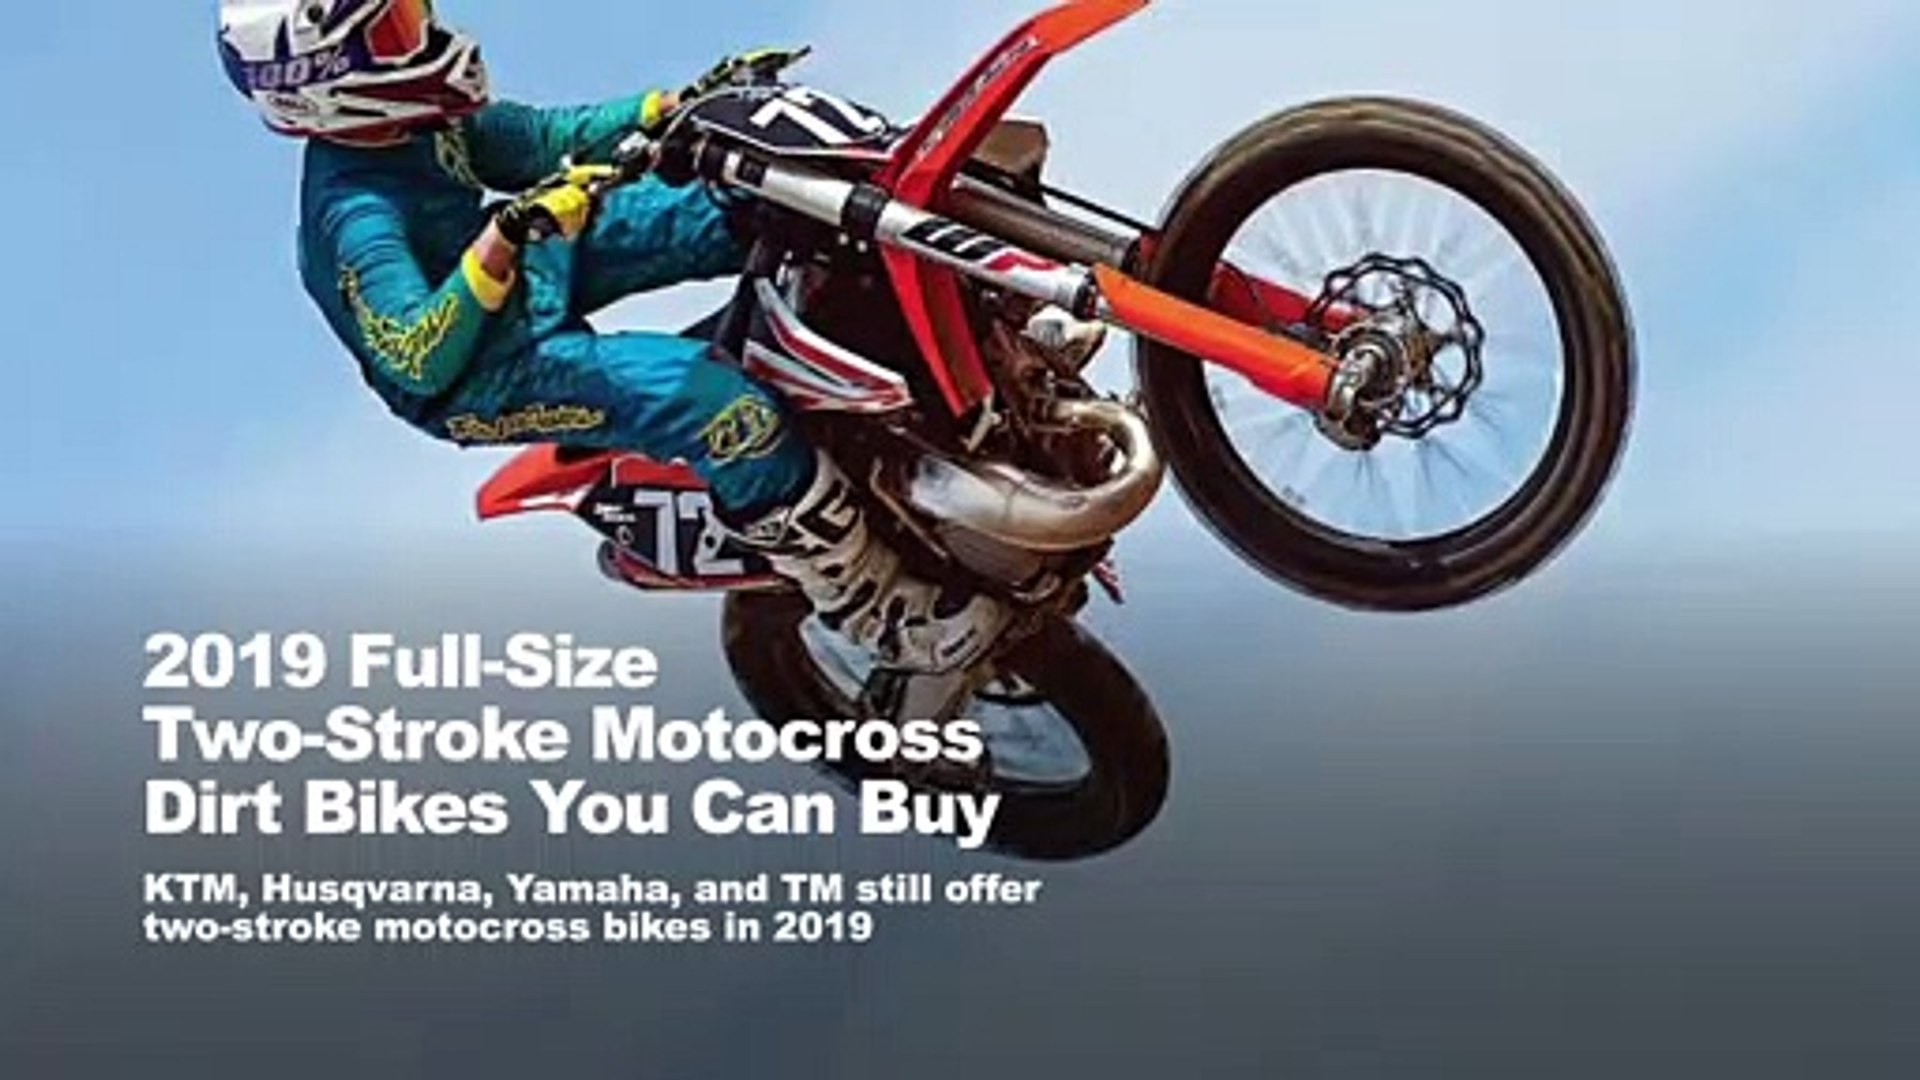 Tm Dirt Bikes >> 2019 Full Size Two Stroke Motocross Dirt Bikes You Can Buy